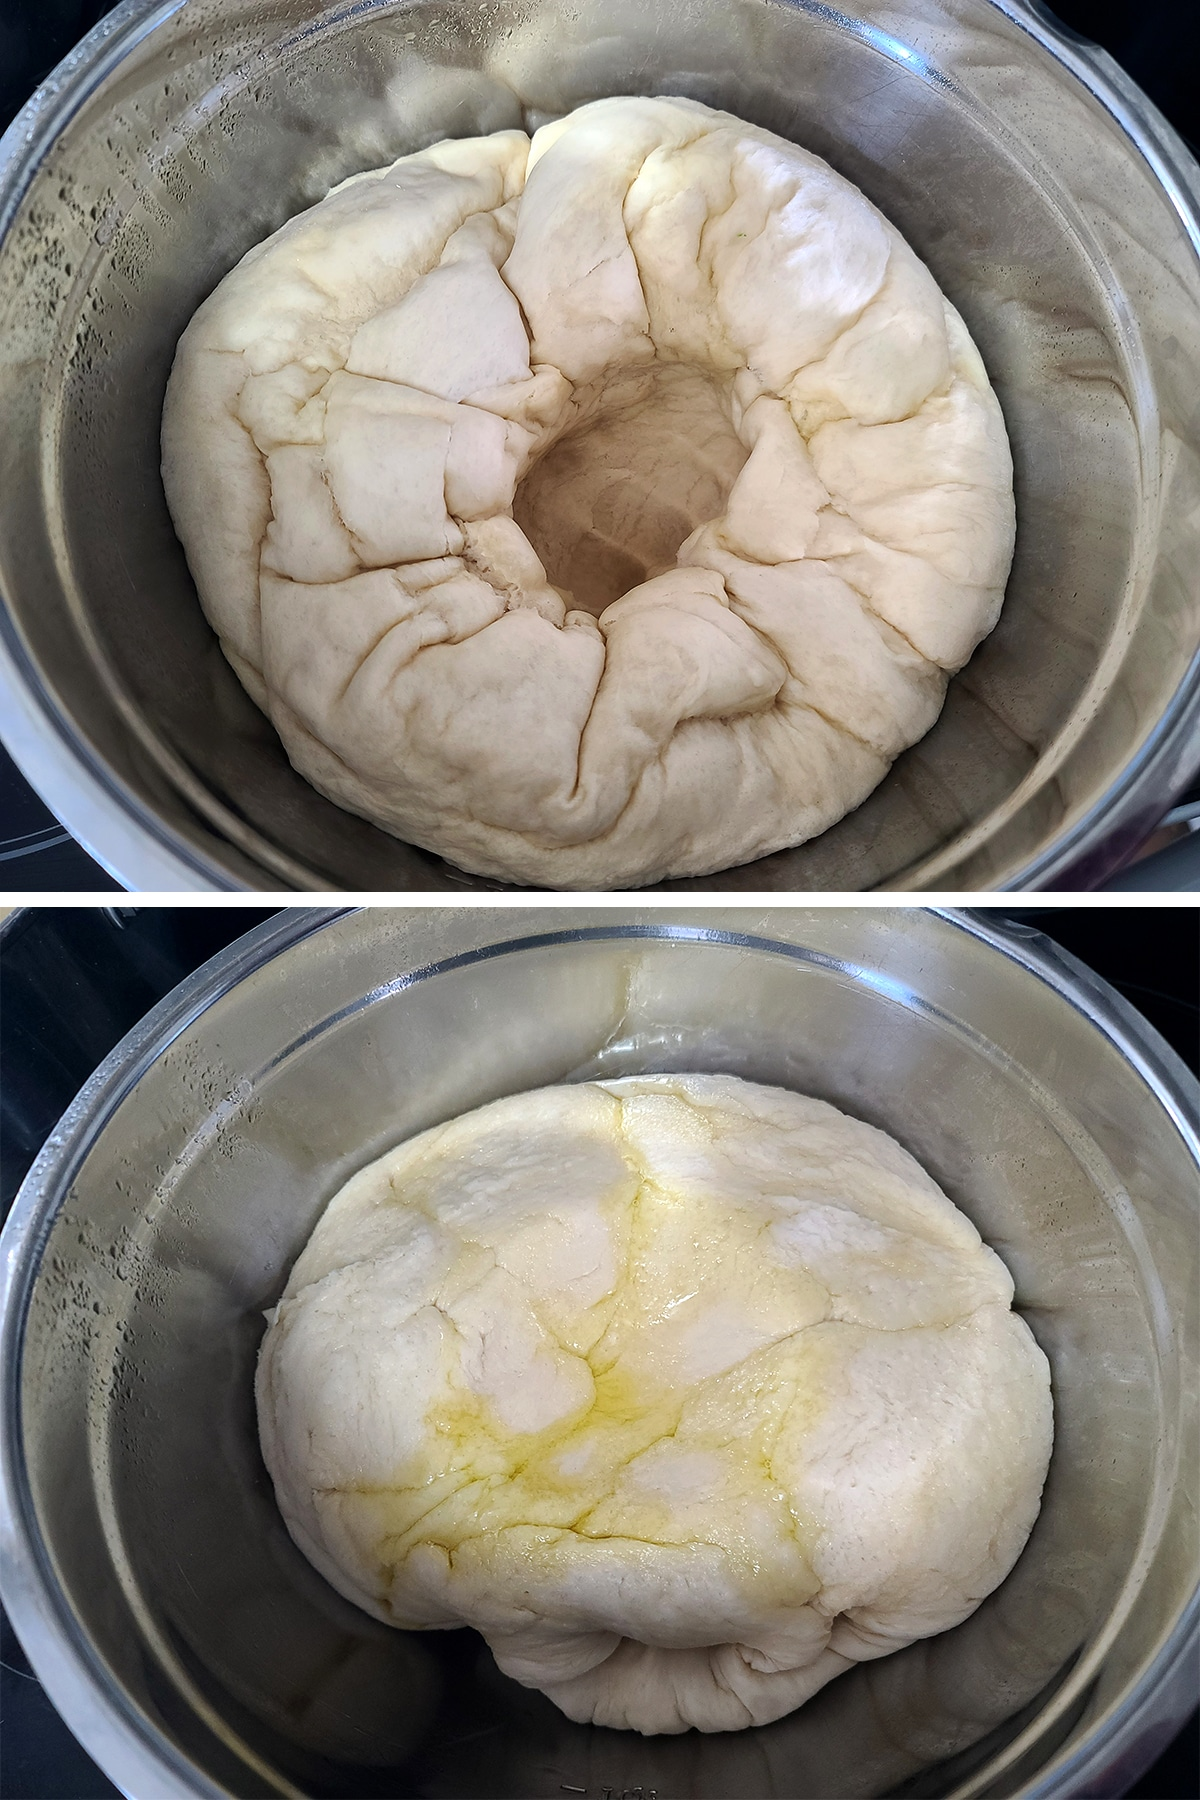 A two part image showing the dough with a punch dent in the middle, then after being flipped.